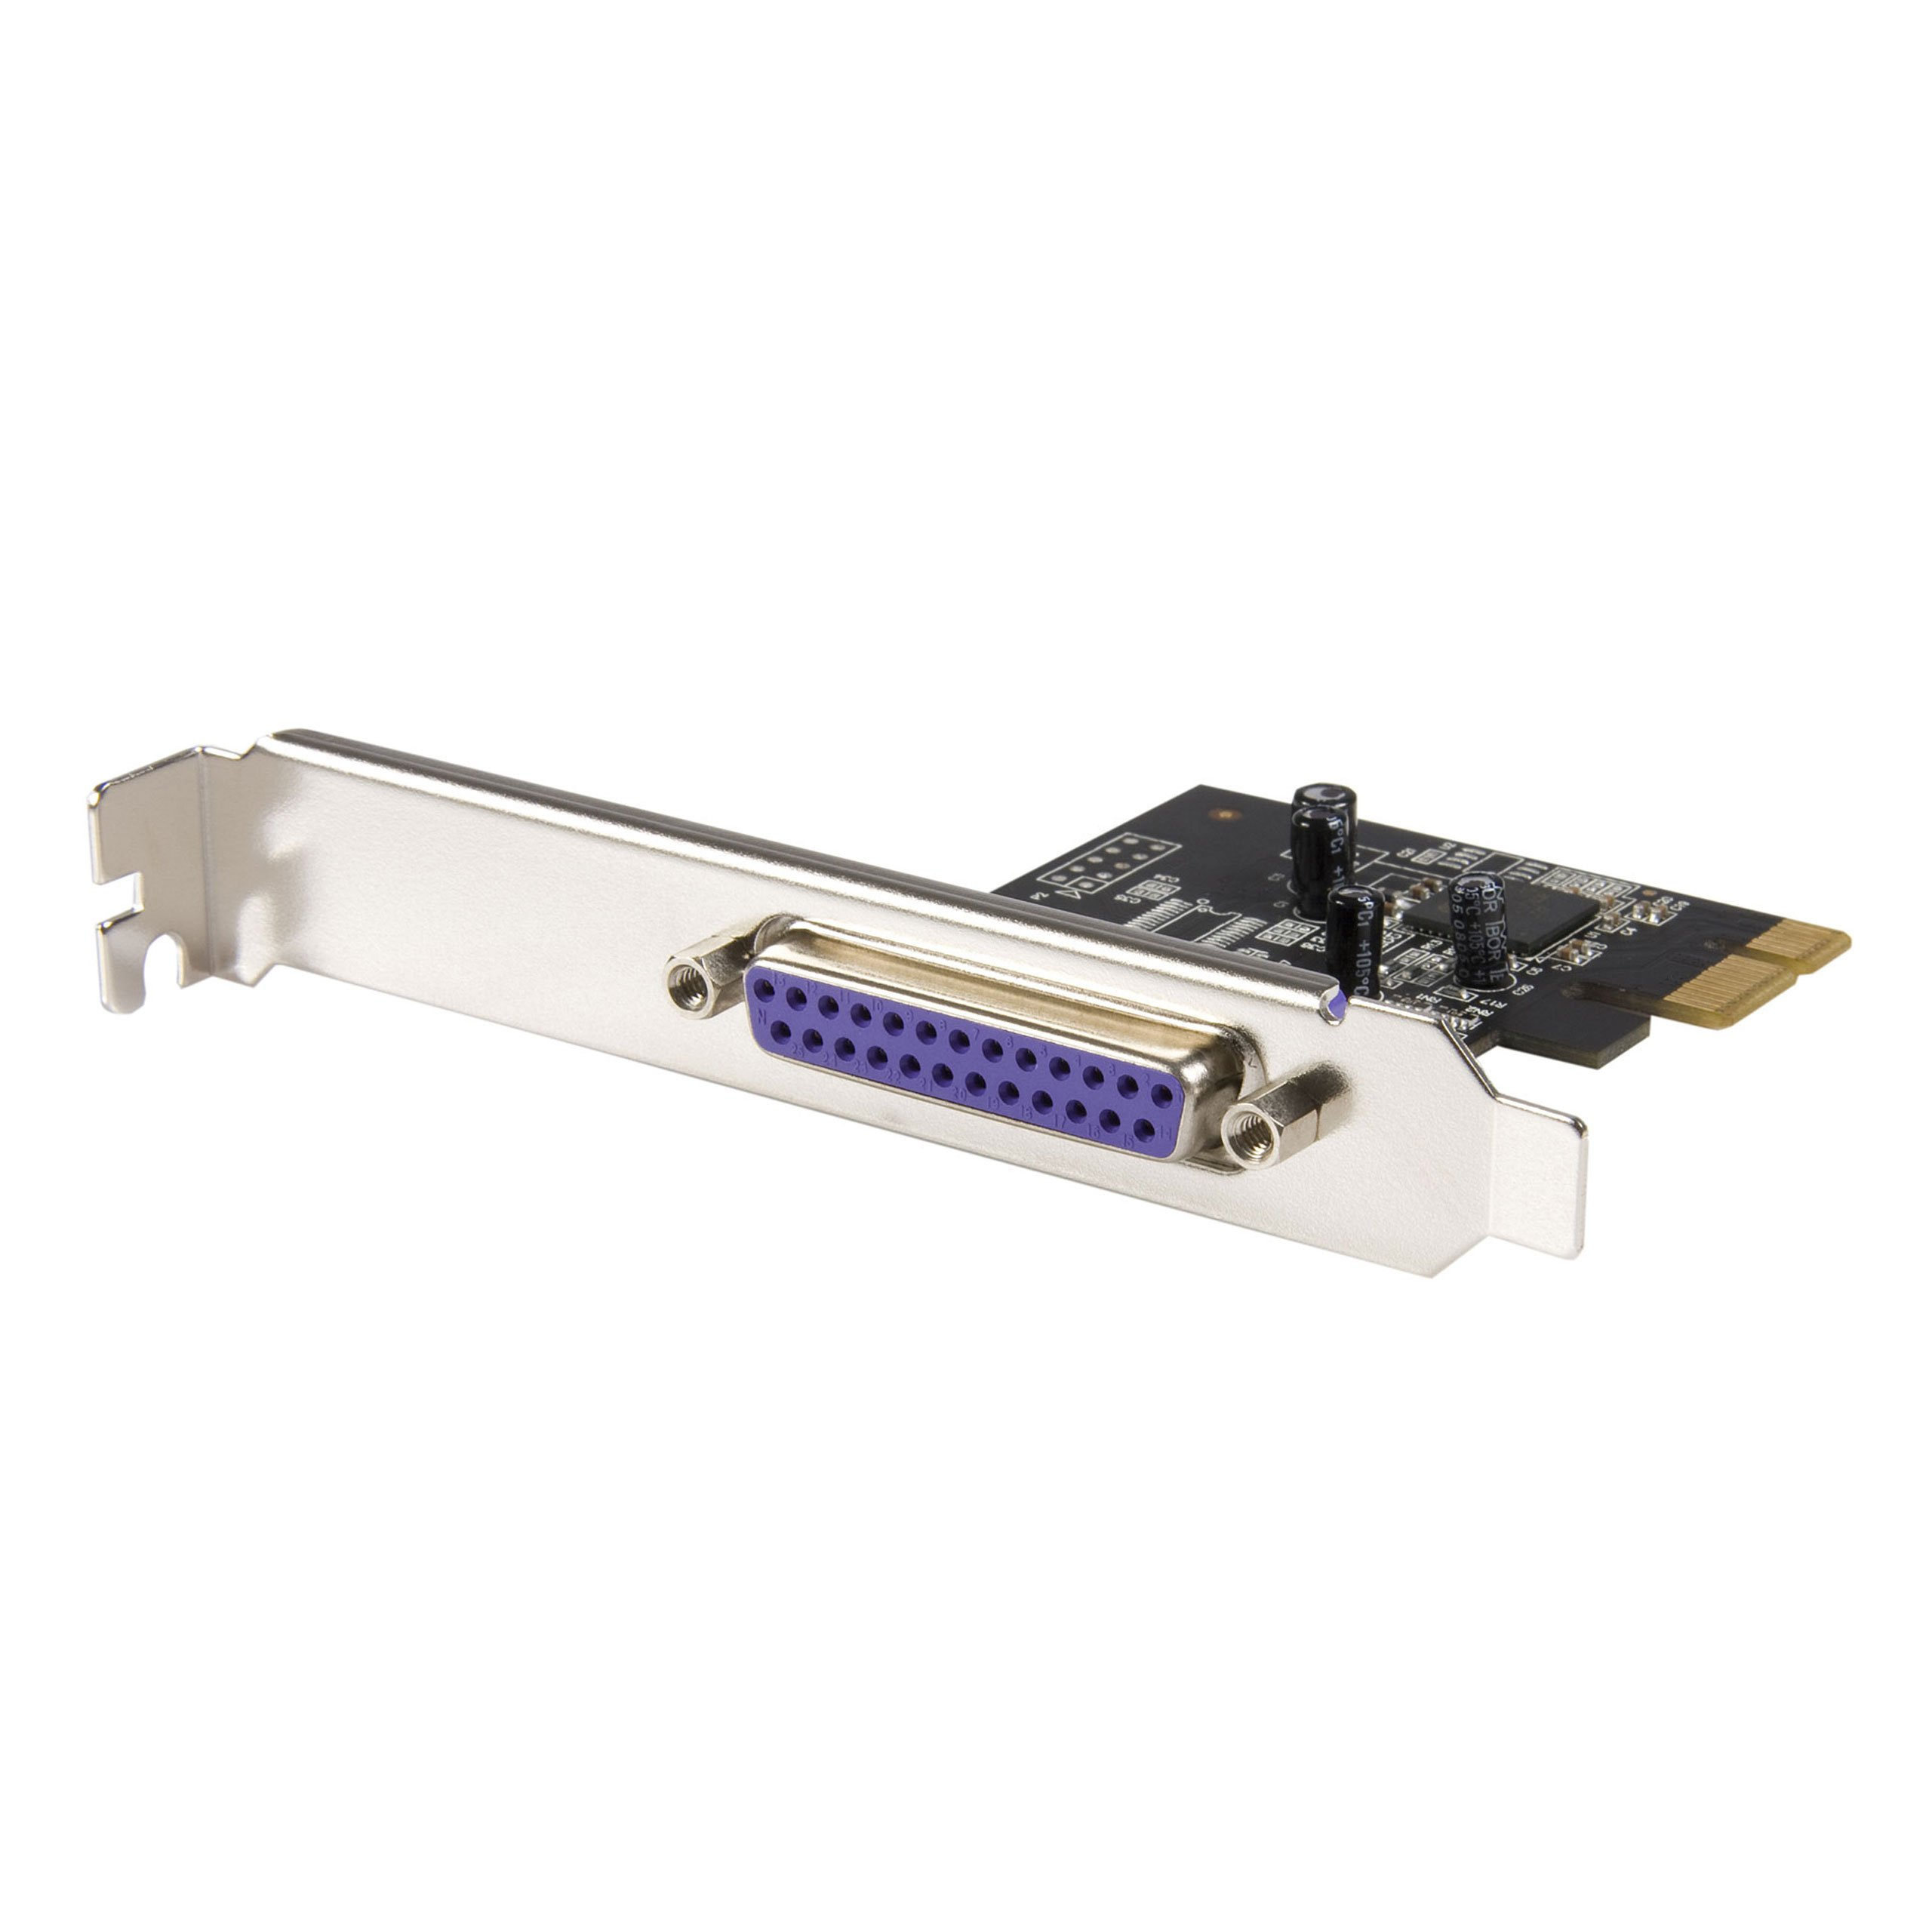 1 Port Pci Express Dual Profile Parallel Adapter Card - Spp/